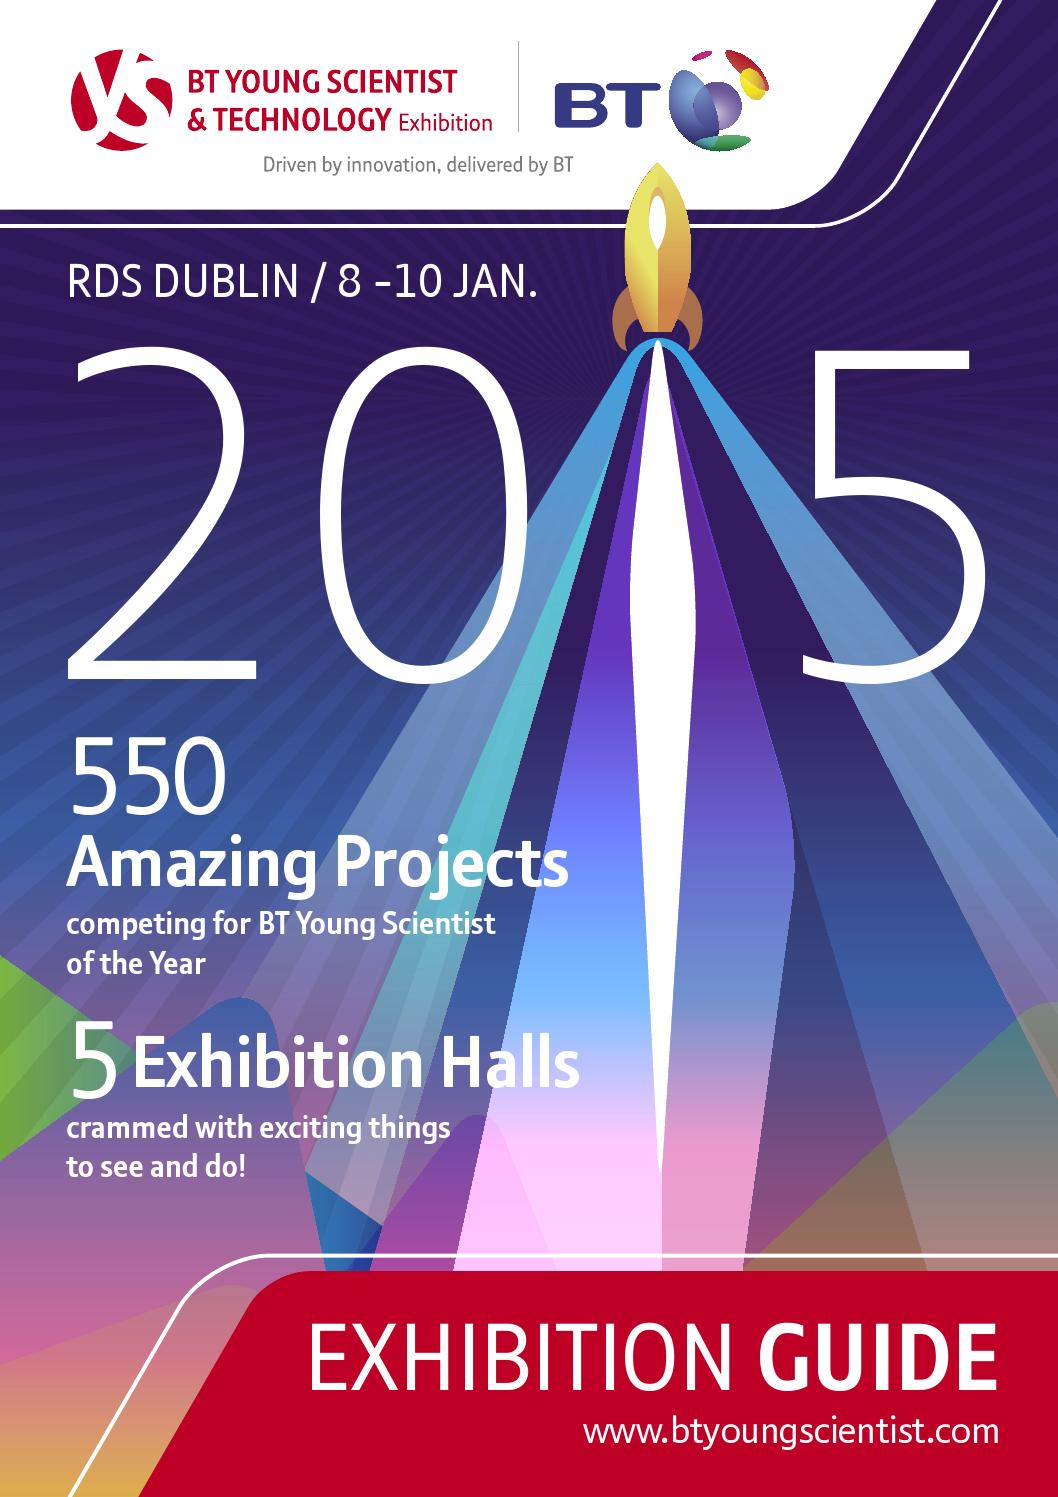 Bt yste 2015 exhibition guide by bt young scientist issuu fandeluxe Images